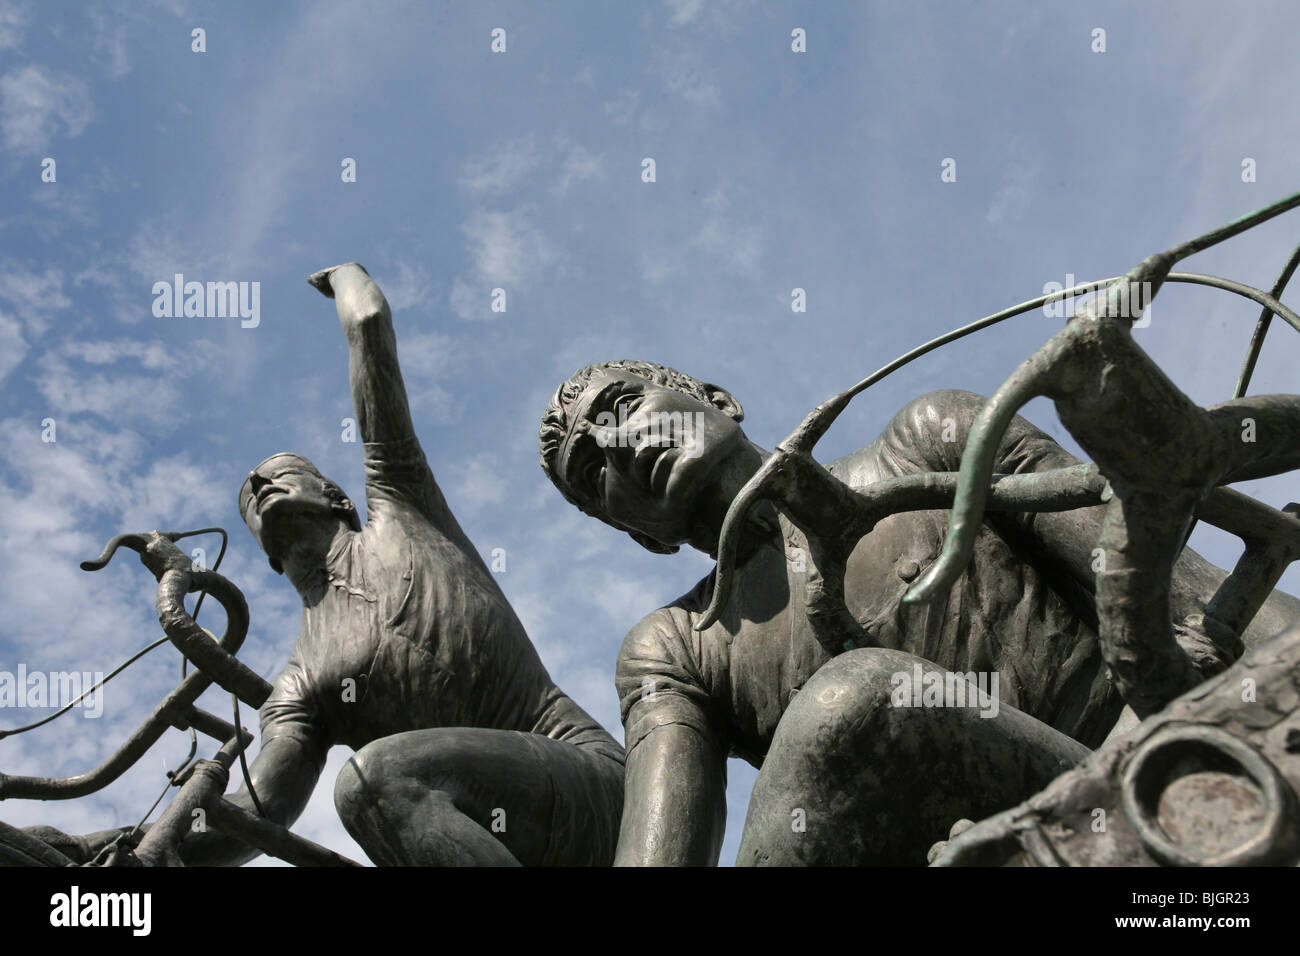 Picture of two bronze statues of cyclists, signifying Victory and Defeat. Memorials to famous Italian cyclists, - Stock Image